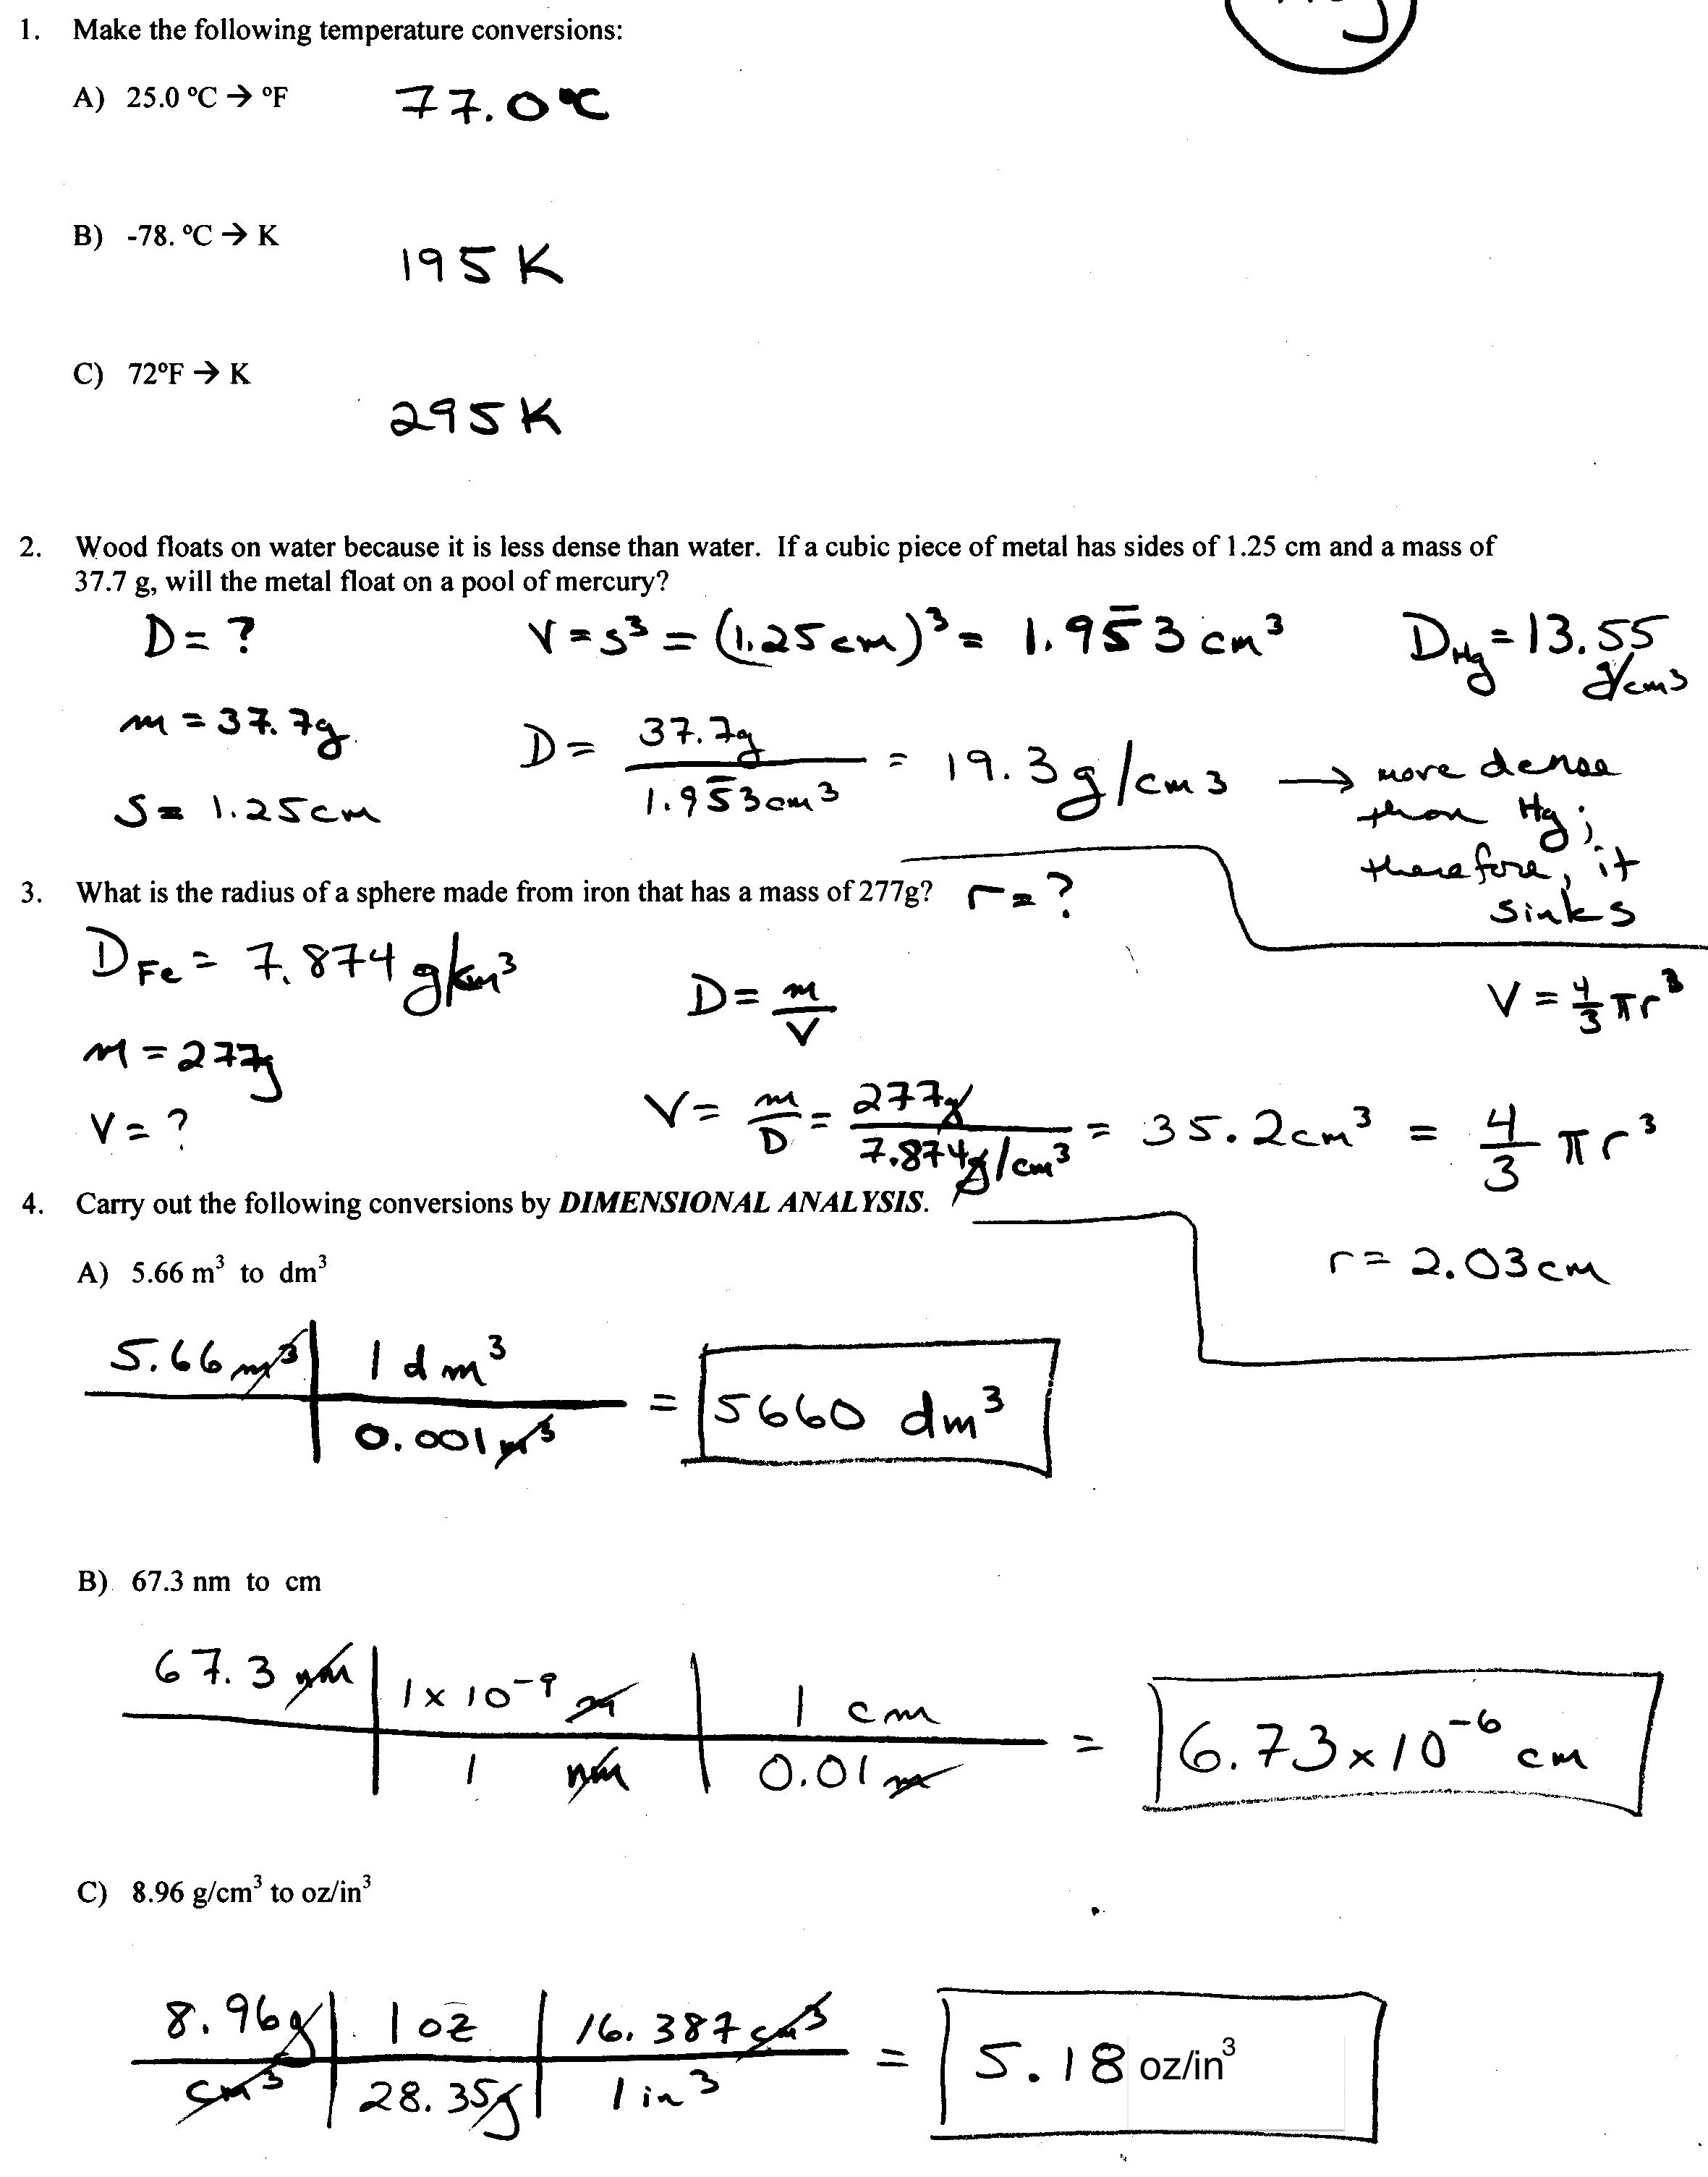 Printables Dimensional Analysis Worksheet With Answers chem 192 lecture density temperature dimensional analysis 1 answer key